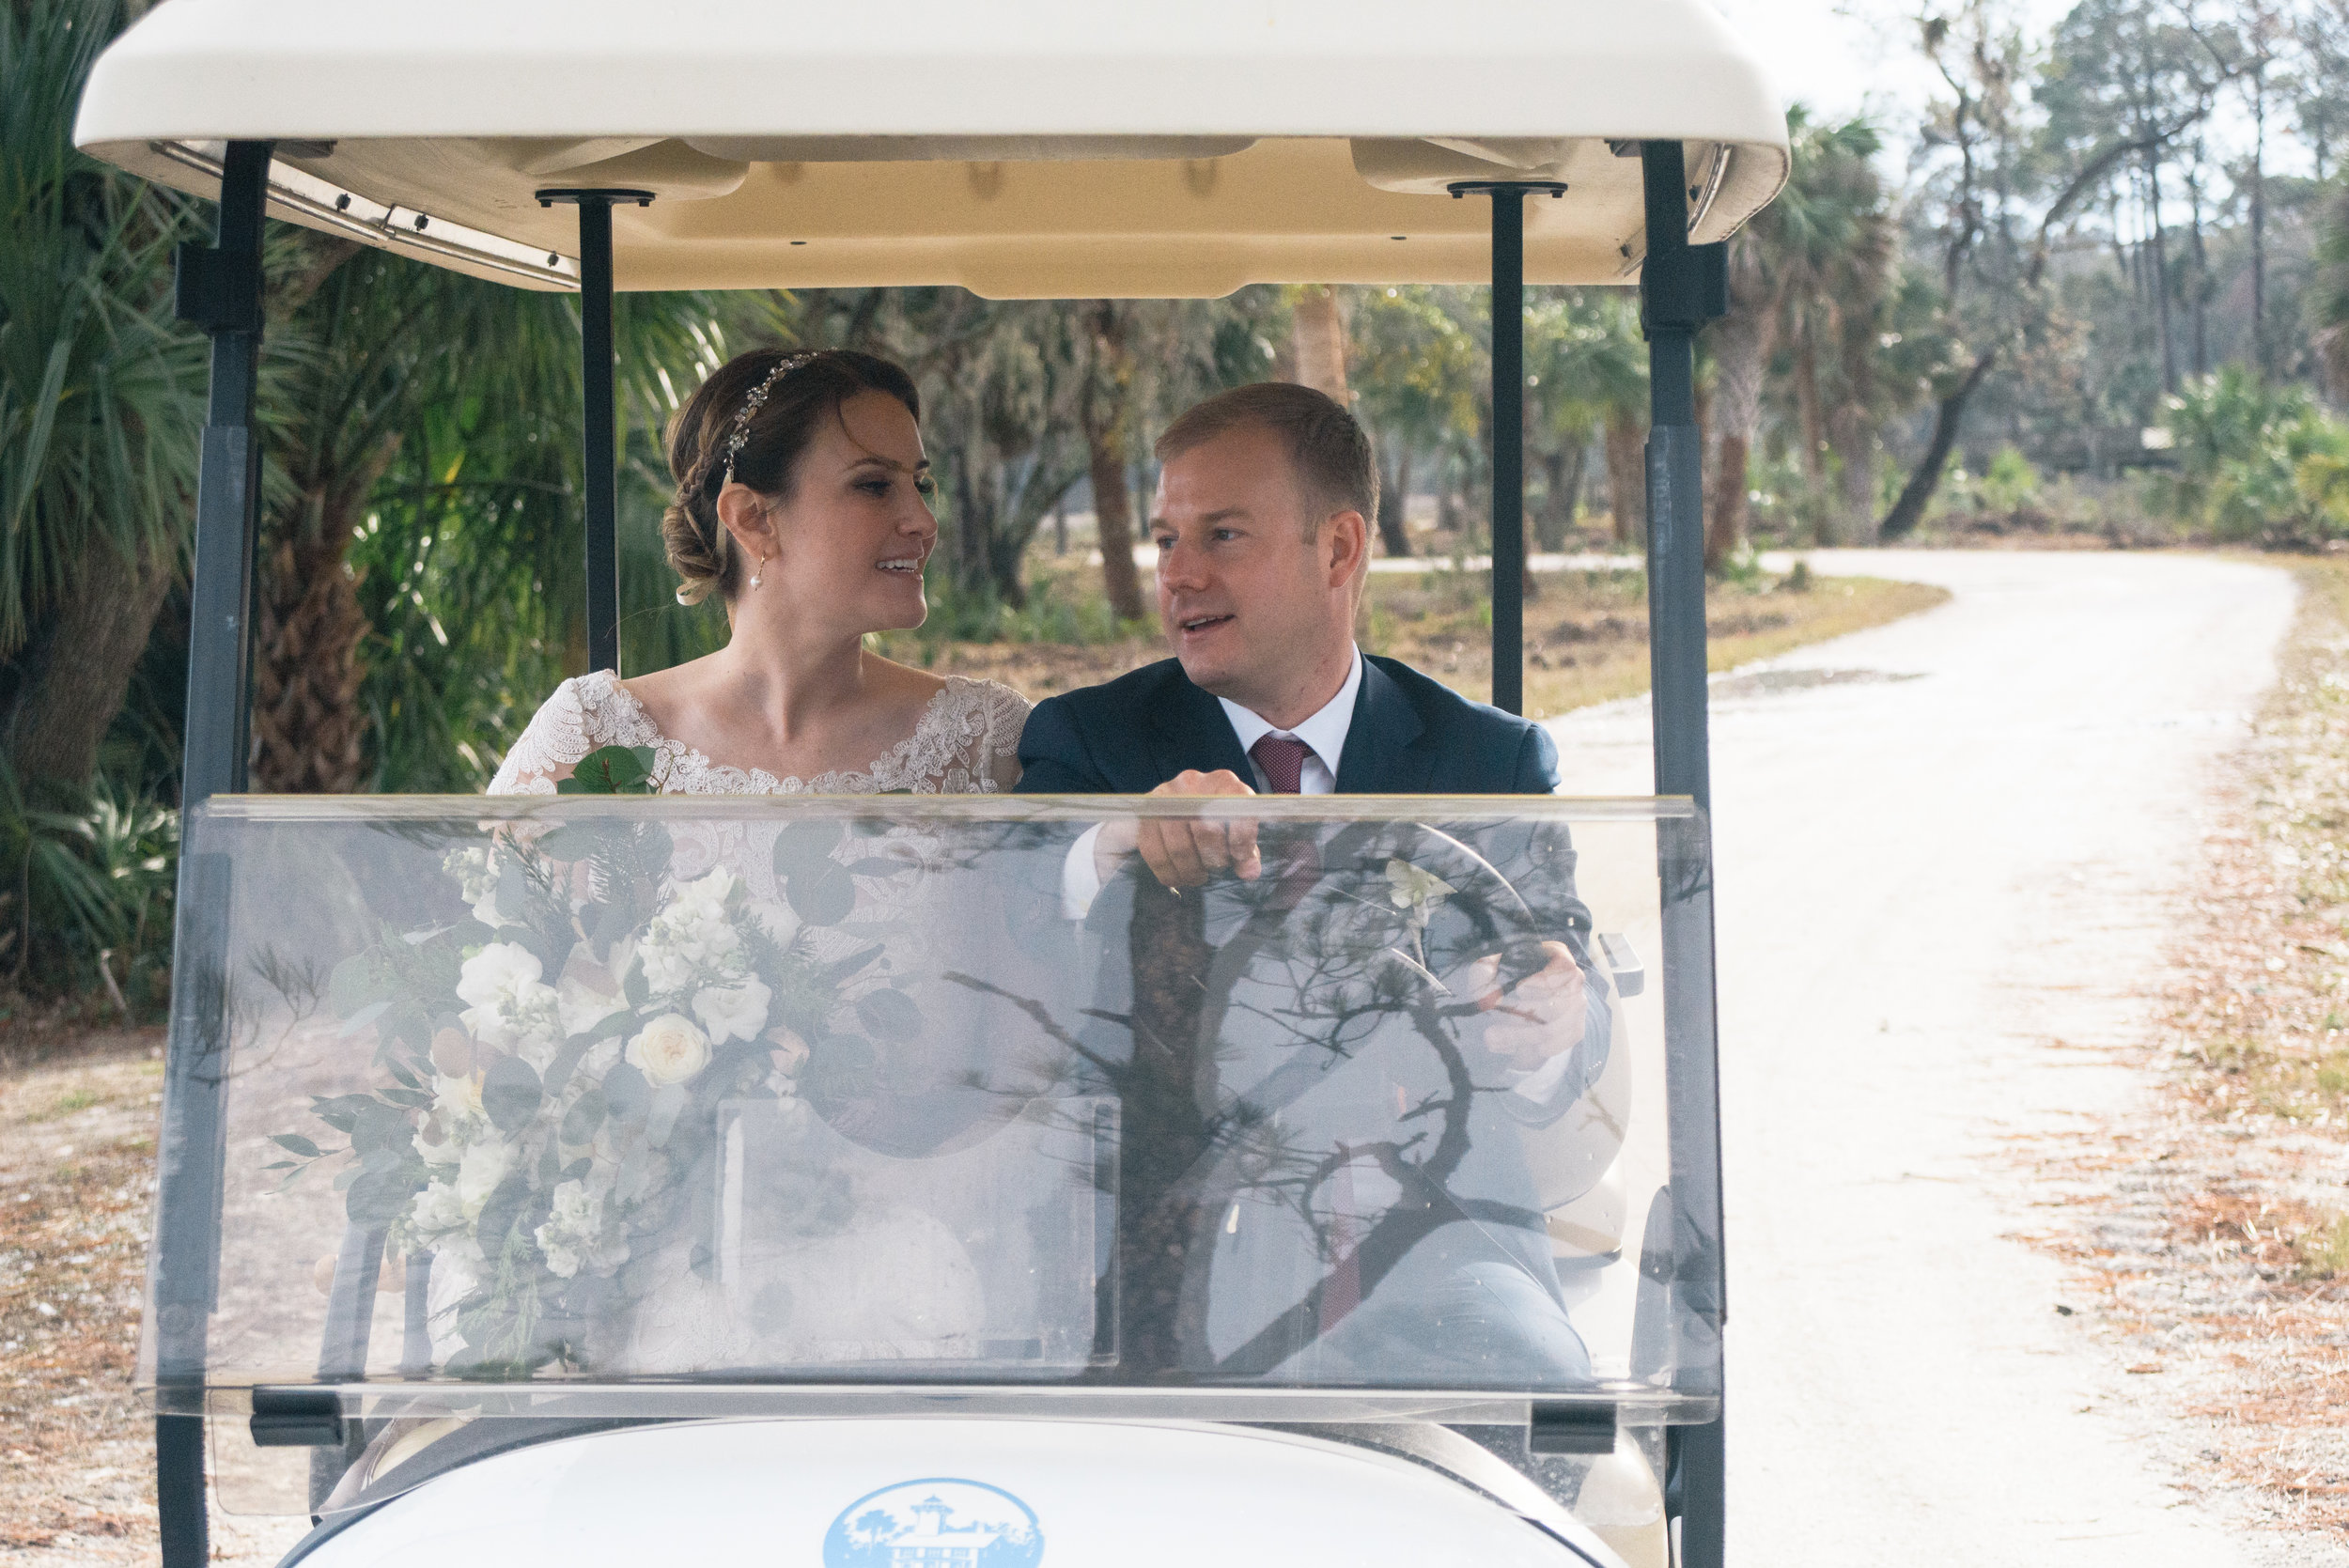 emily-and-david-daufuskie-island-wedding-december-wedding-meg-hill-photo- (407 of 728).jpg